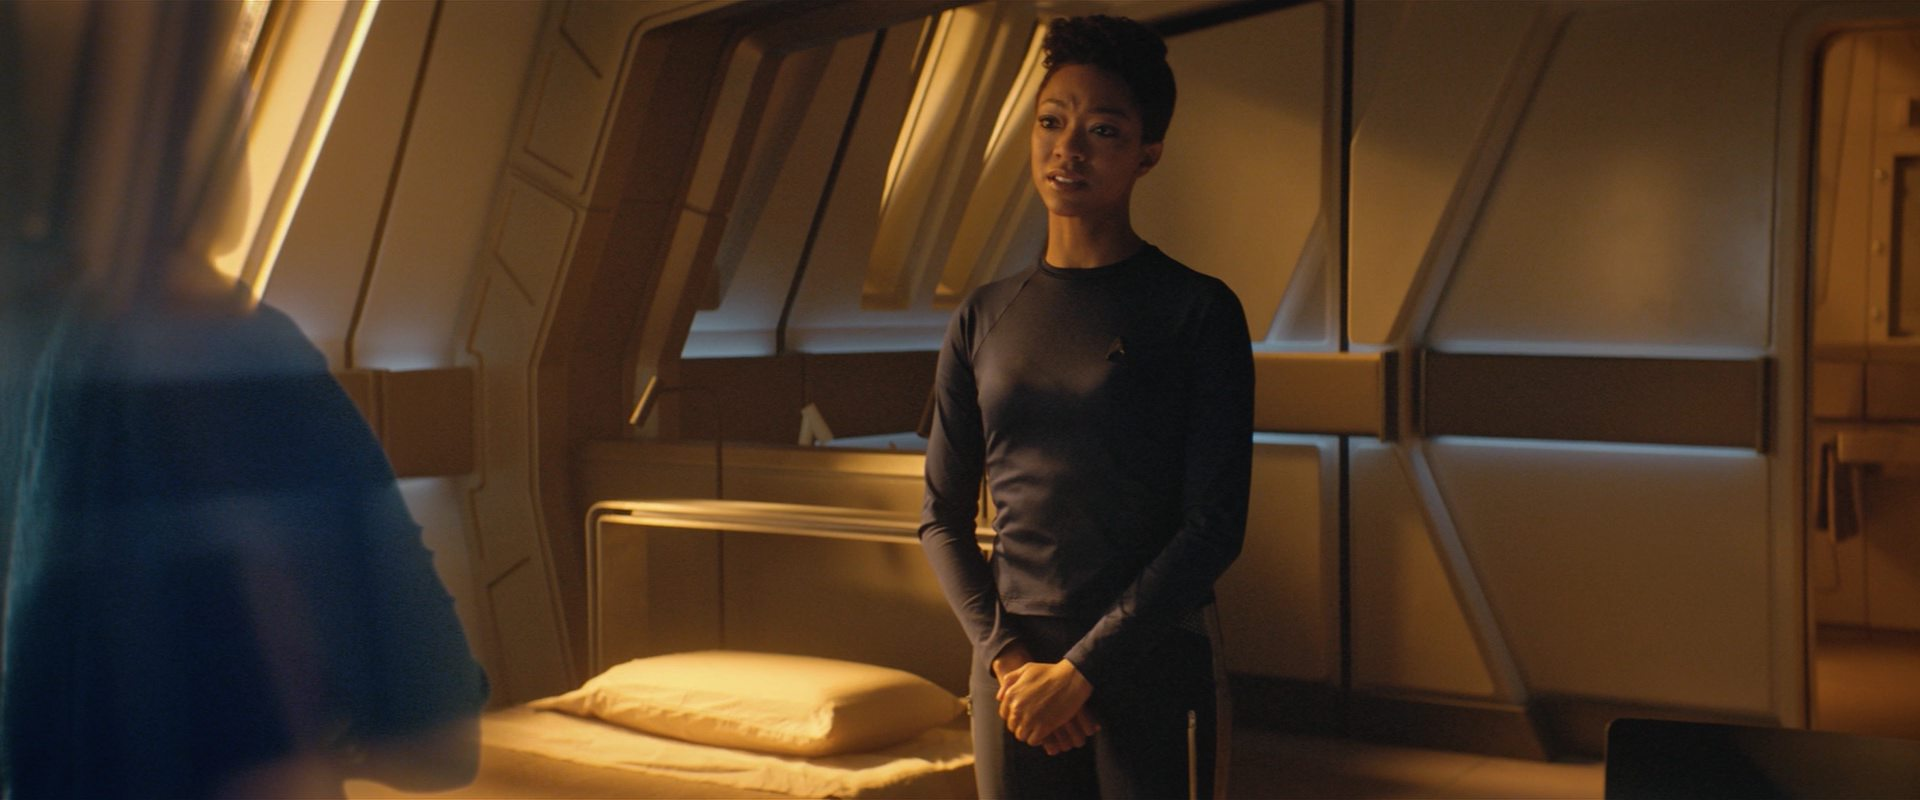 extant_StarTrekDiscovery_2x12-ThroughTheValleyOfShadows_00198.jpg